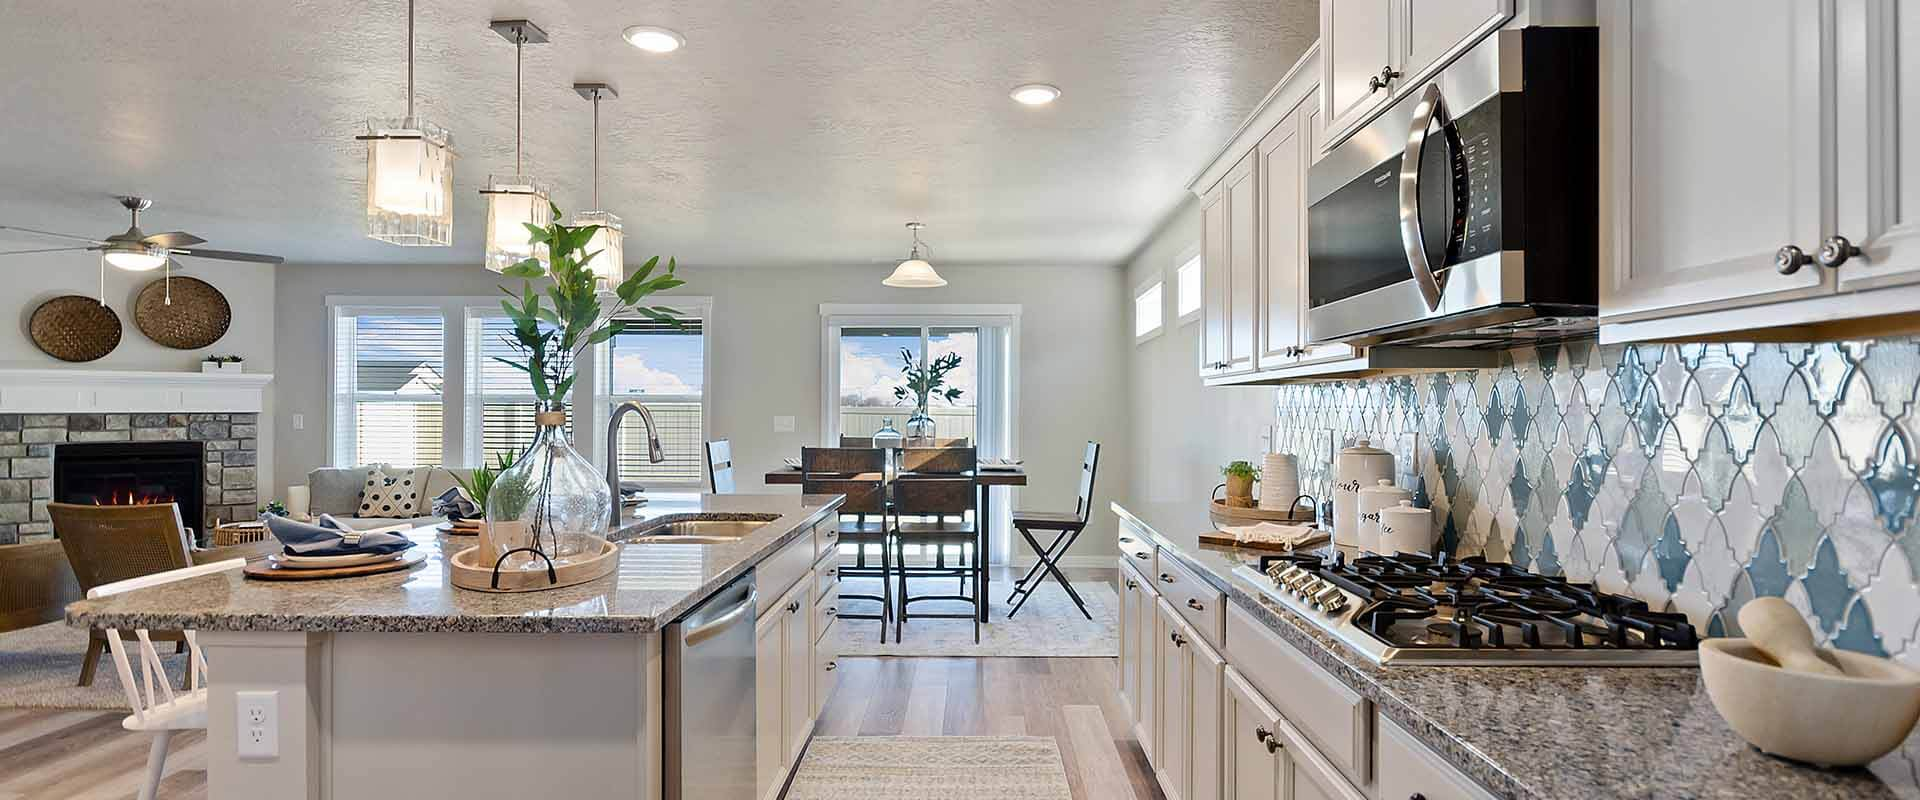 Spruce_Hubble_Homes_New_Homes_Boise_Kitchen.jpg